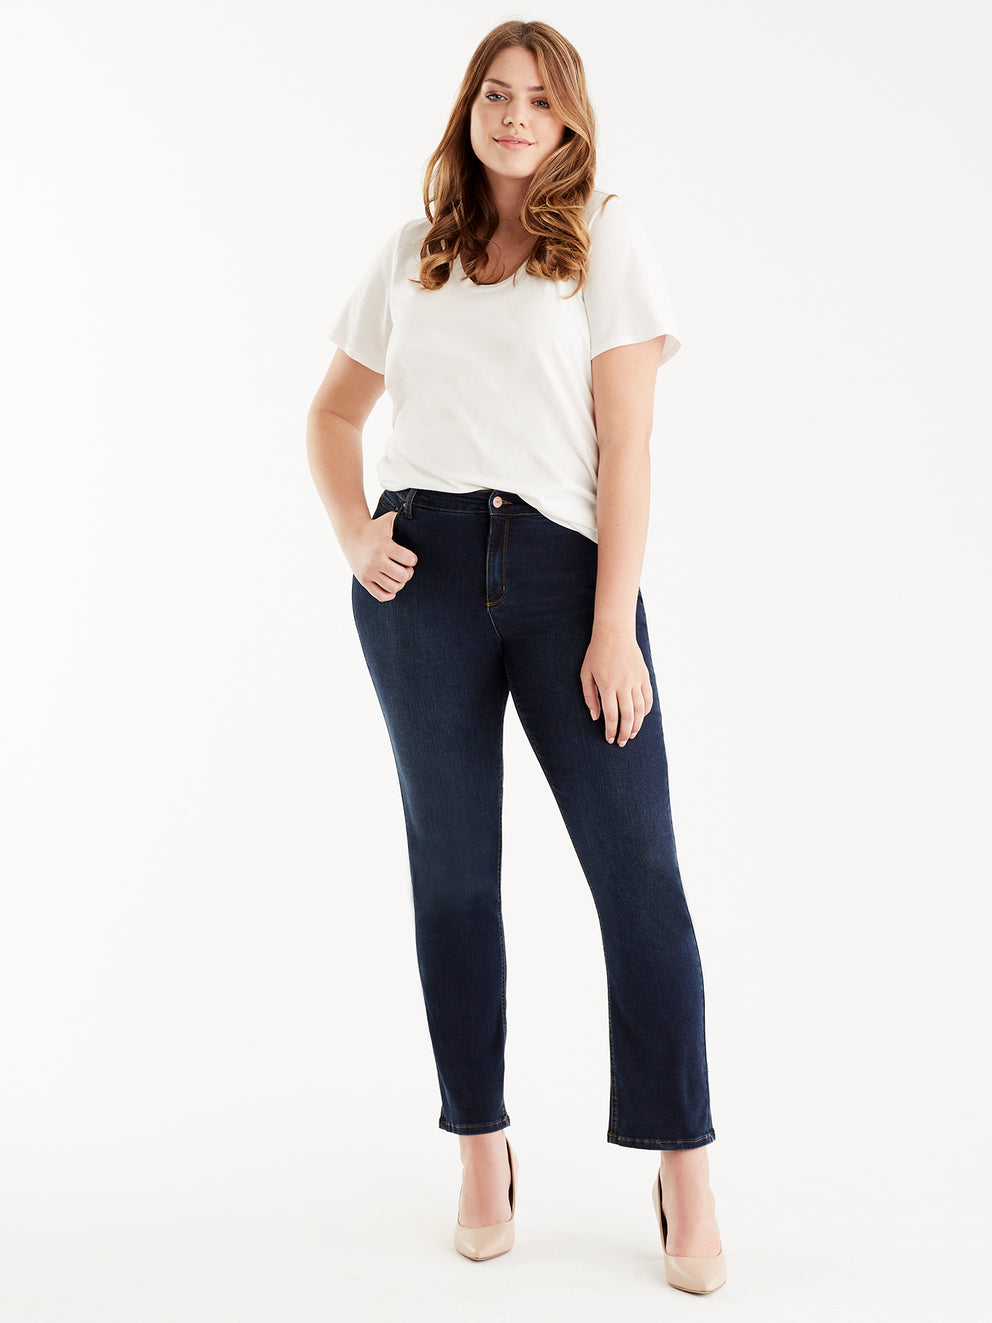 The Jones New York Lexington Indigo Wash Straight Leg Jeans, Plus Size in color Indigo Wash - Image Position 2